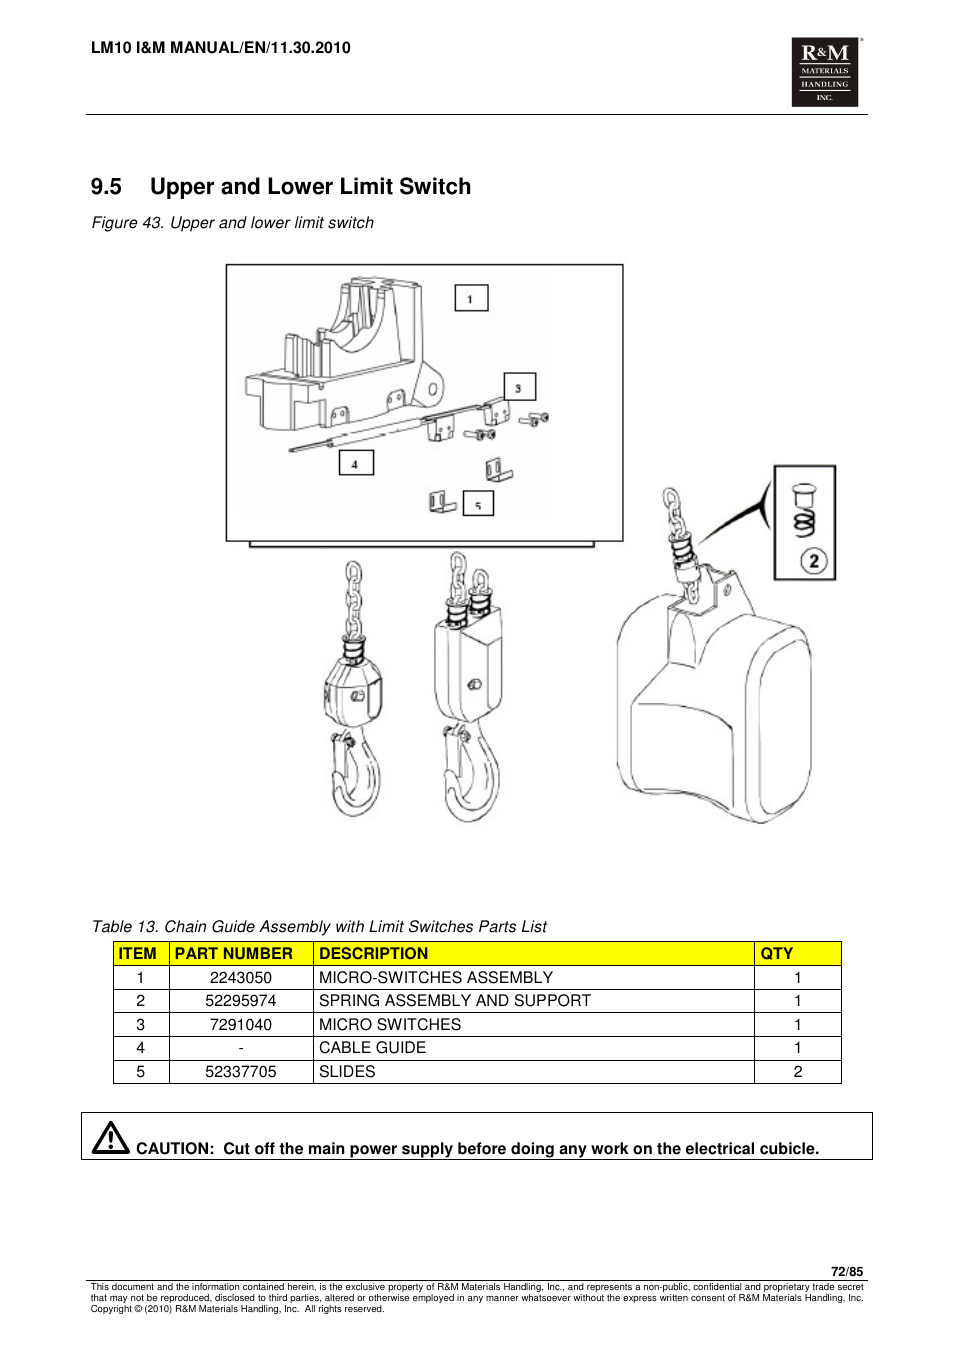 Pendant Wiring Diagram Lm 10 Librarycm Hoist B 27294 Library